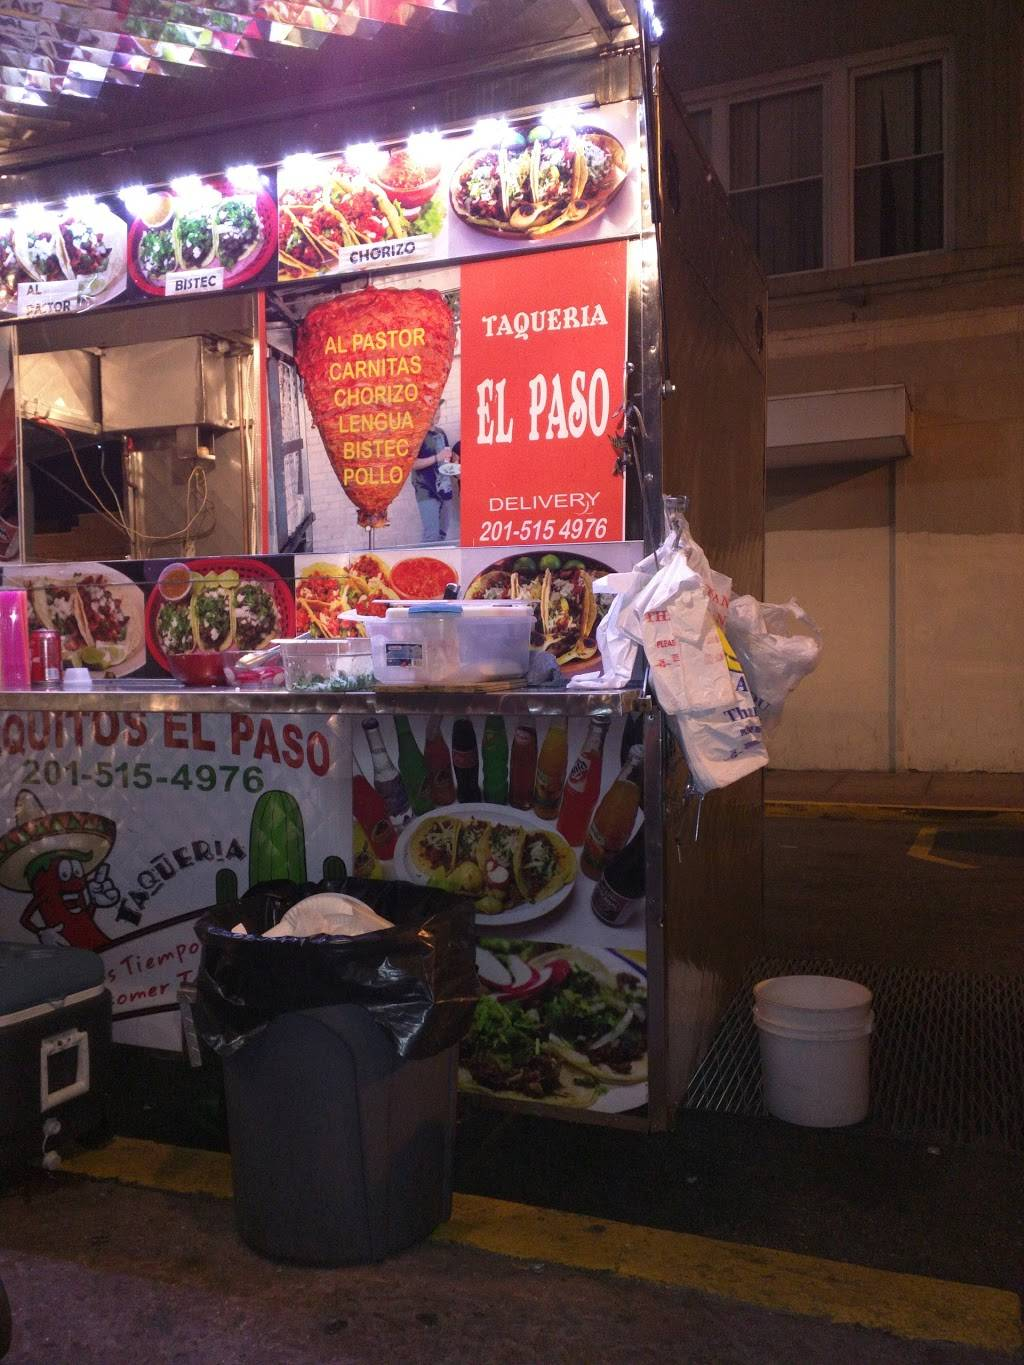 Taquitos El Paso Taco Truck | restaurant | 417 36th St, Union City, NJ 07087, USA | 2015154976 OR +1 201-515-4976